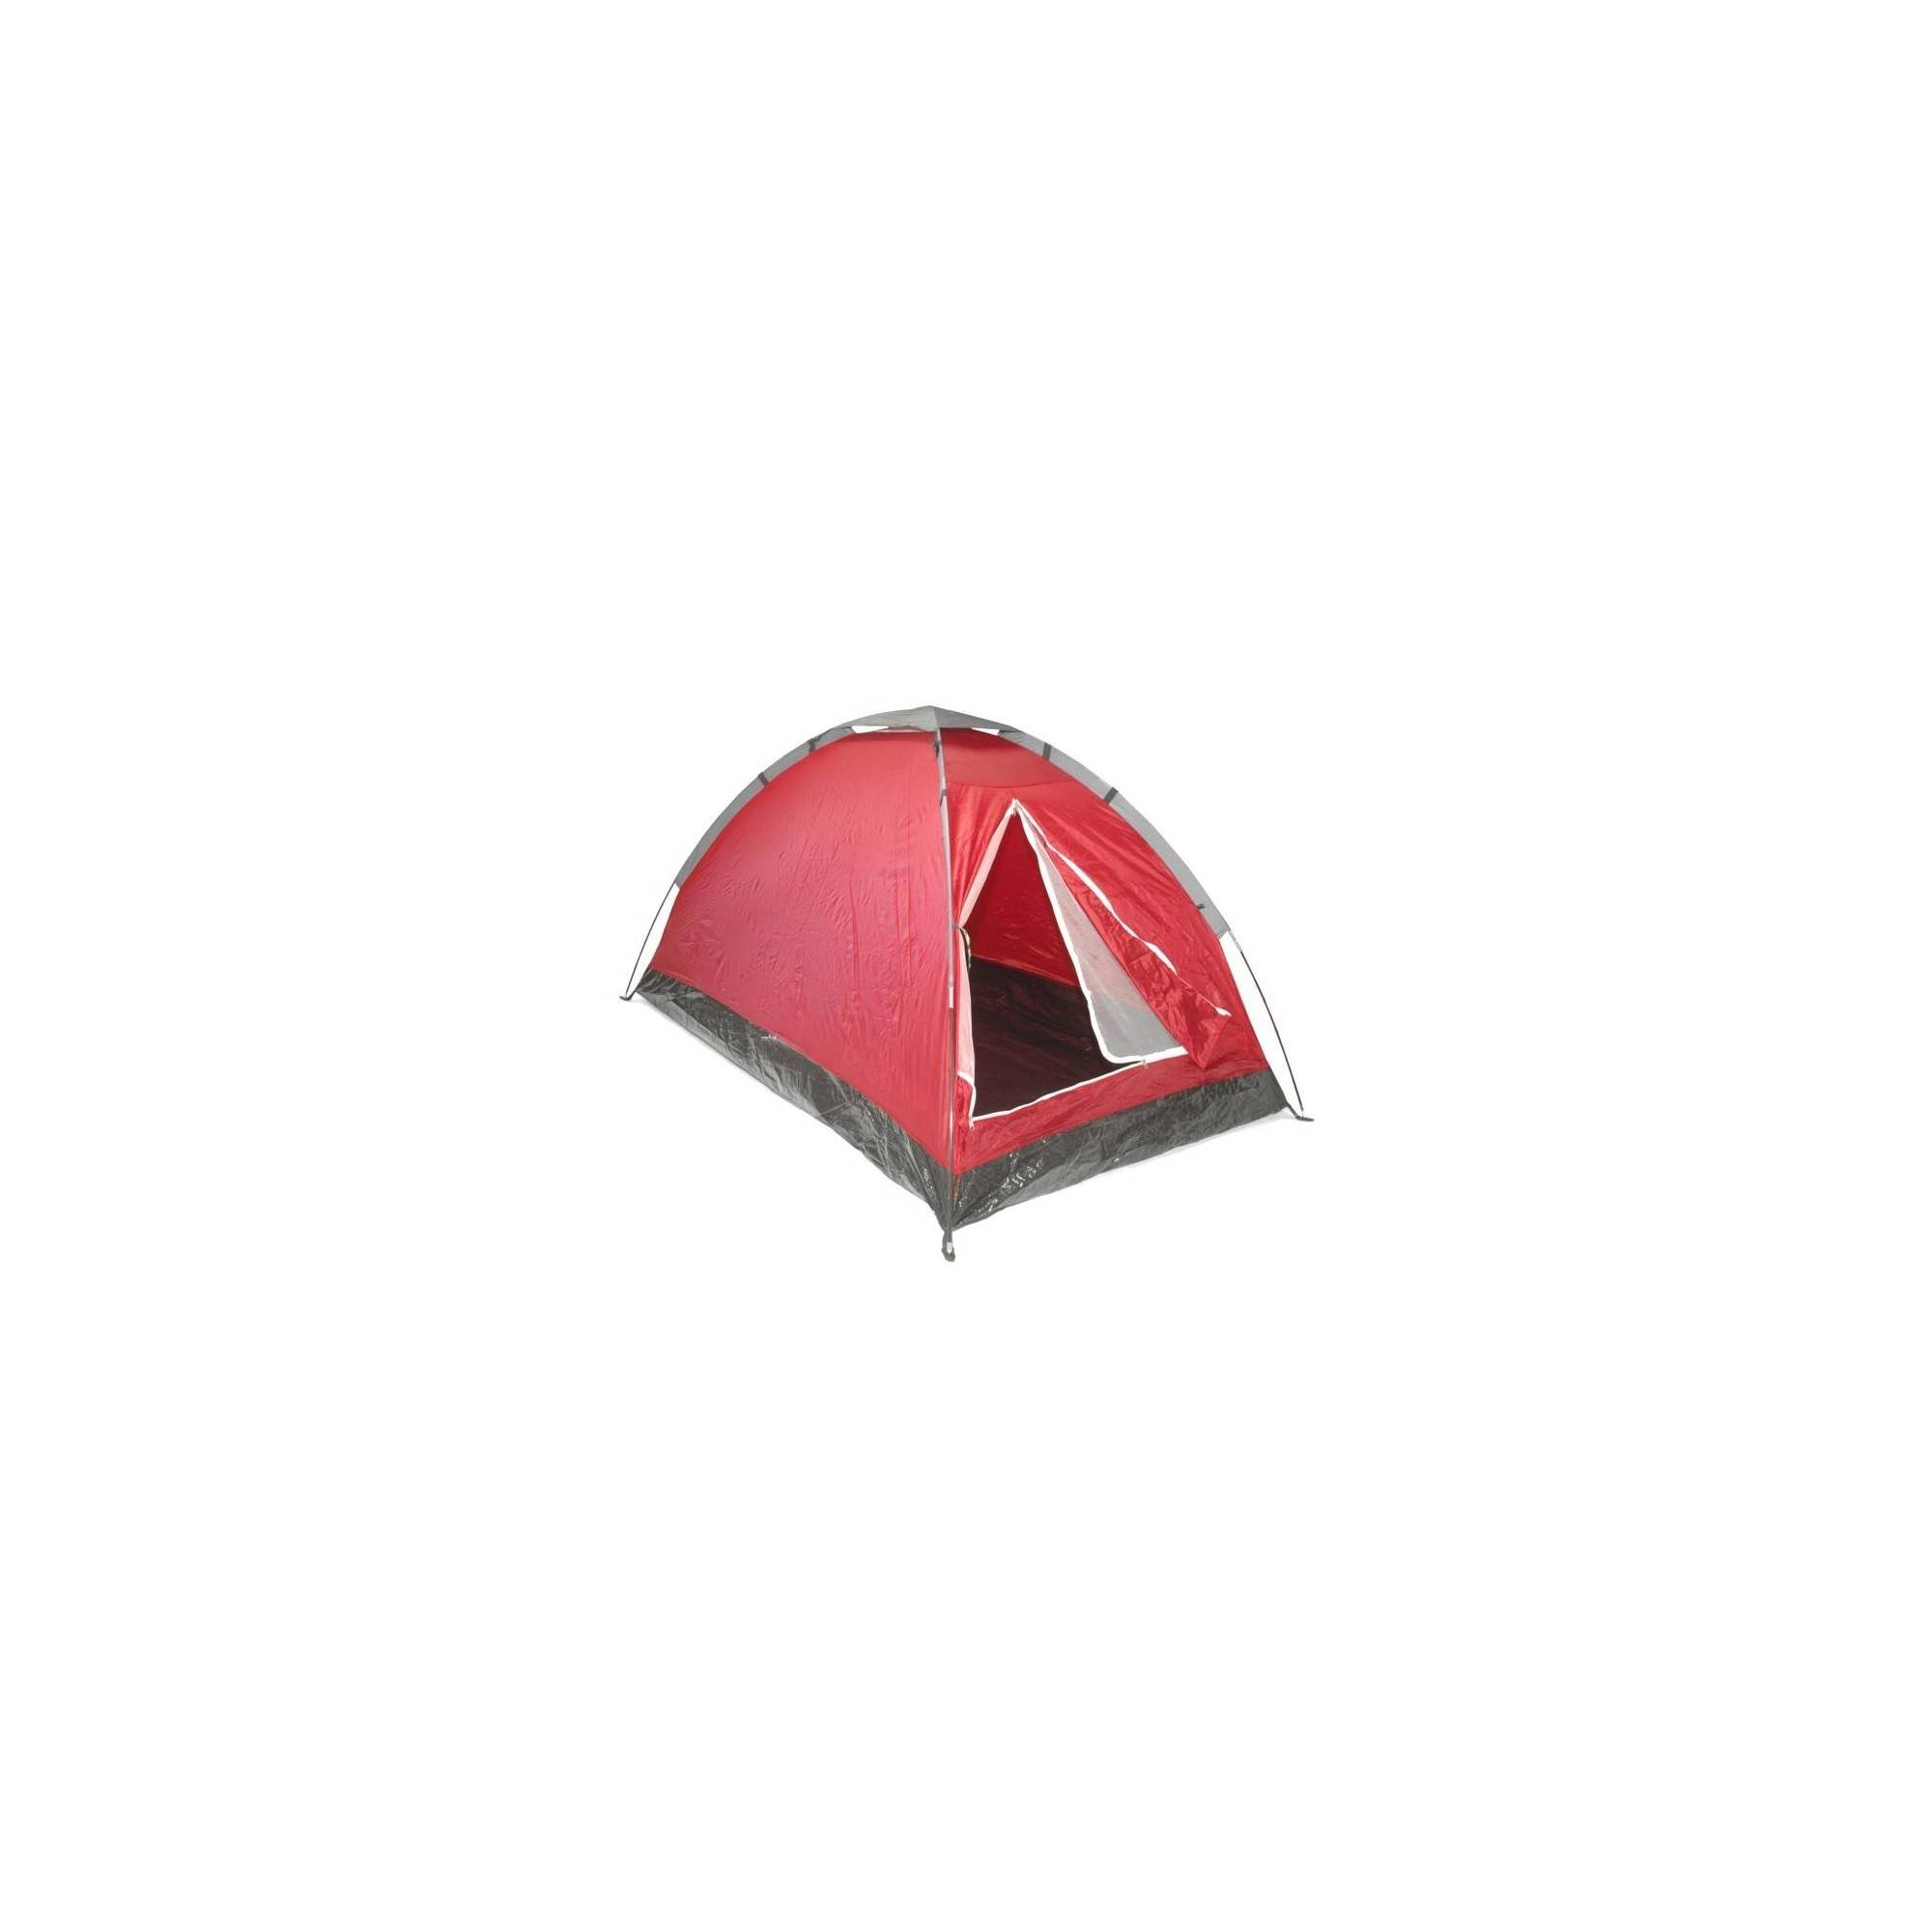 Namiot 2-osobowy Camp Active DOME 185x120x100cm CAMP ACTIVE - 2 | klubfitness.pl